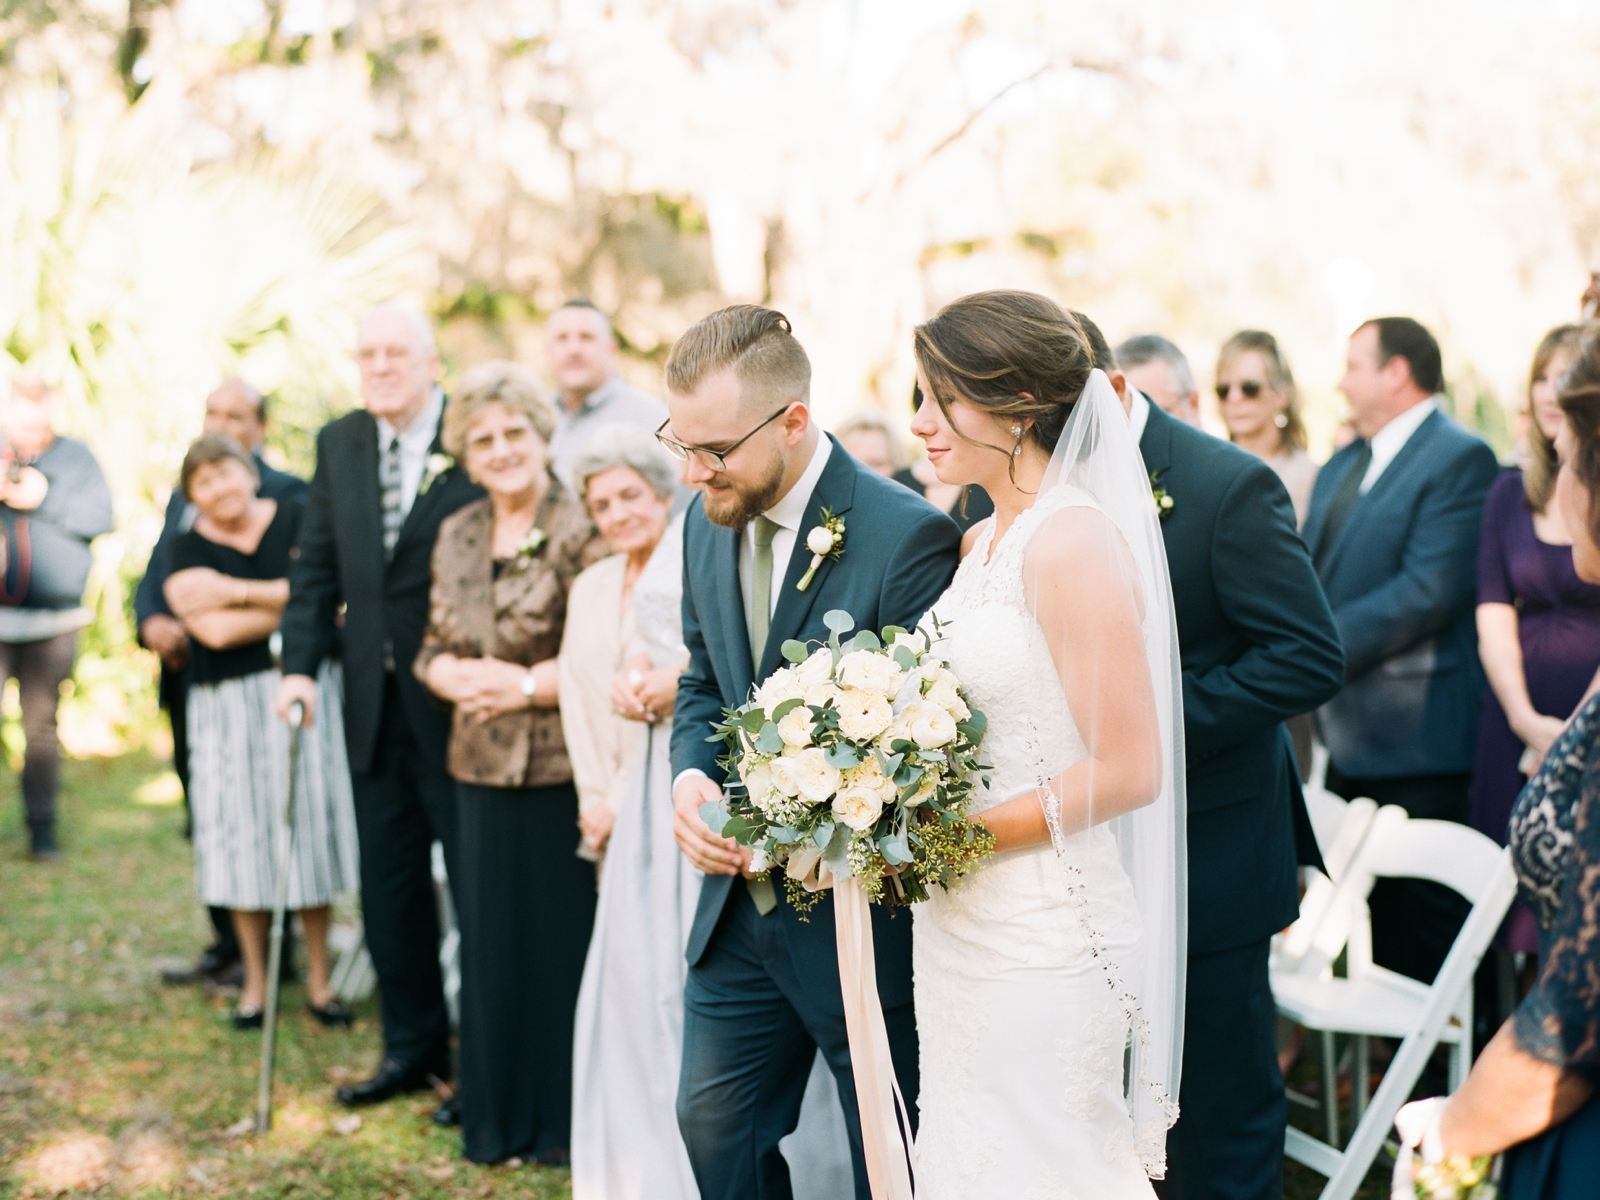 goodwood museum tallahassee wedding photographer - tallahassee florida - shannon griffin_0030.jpg